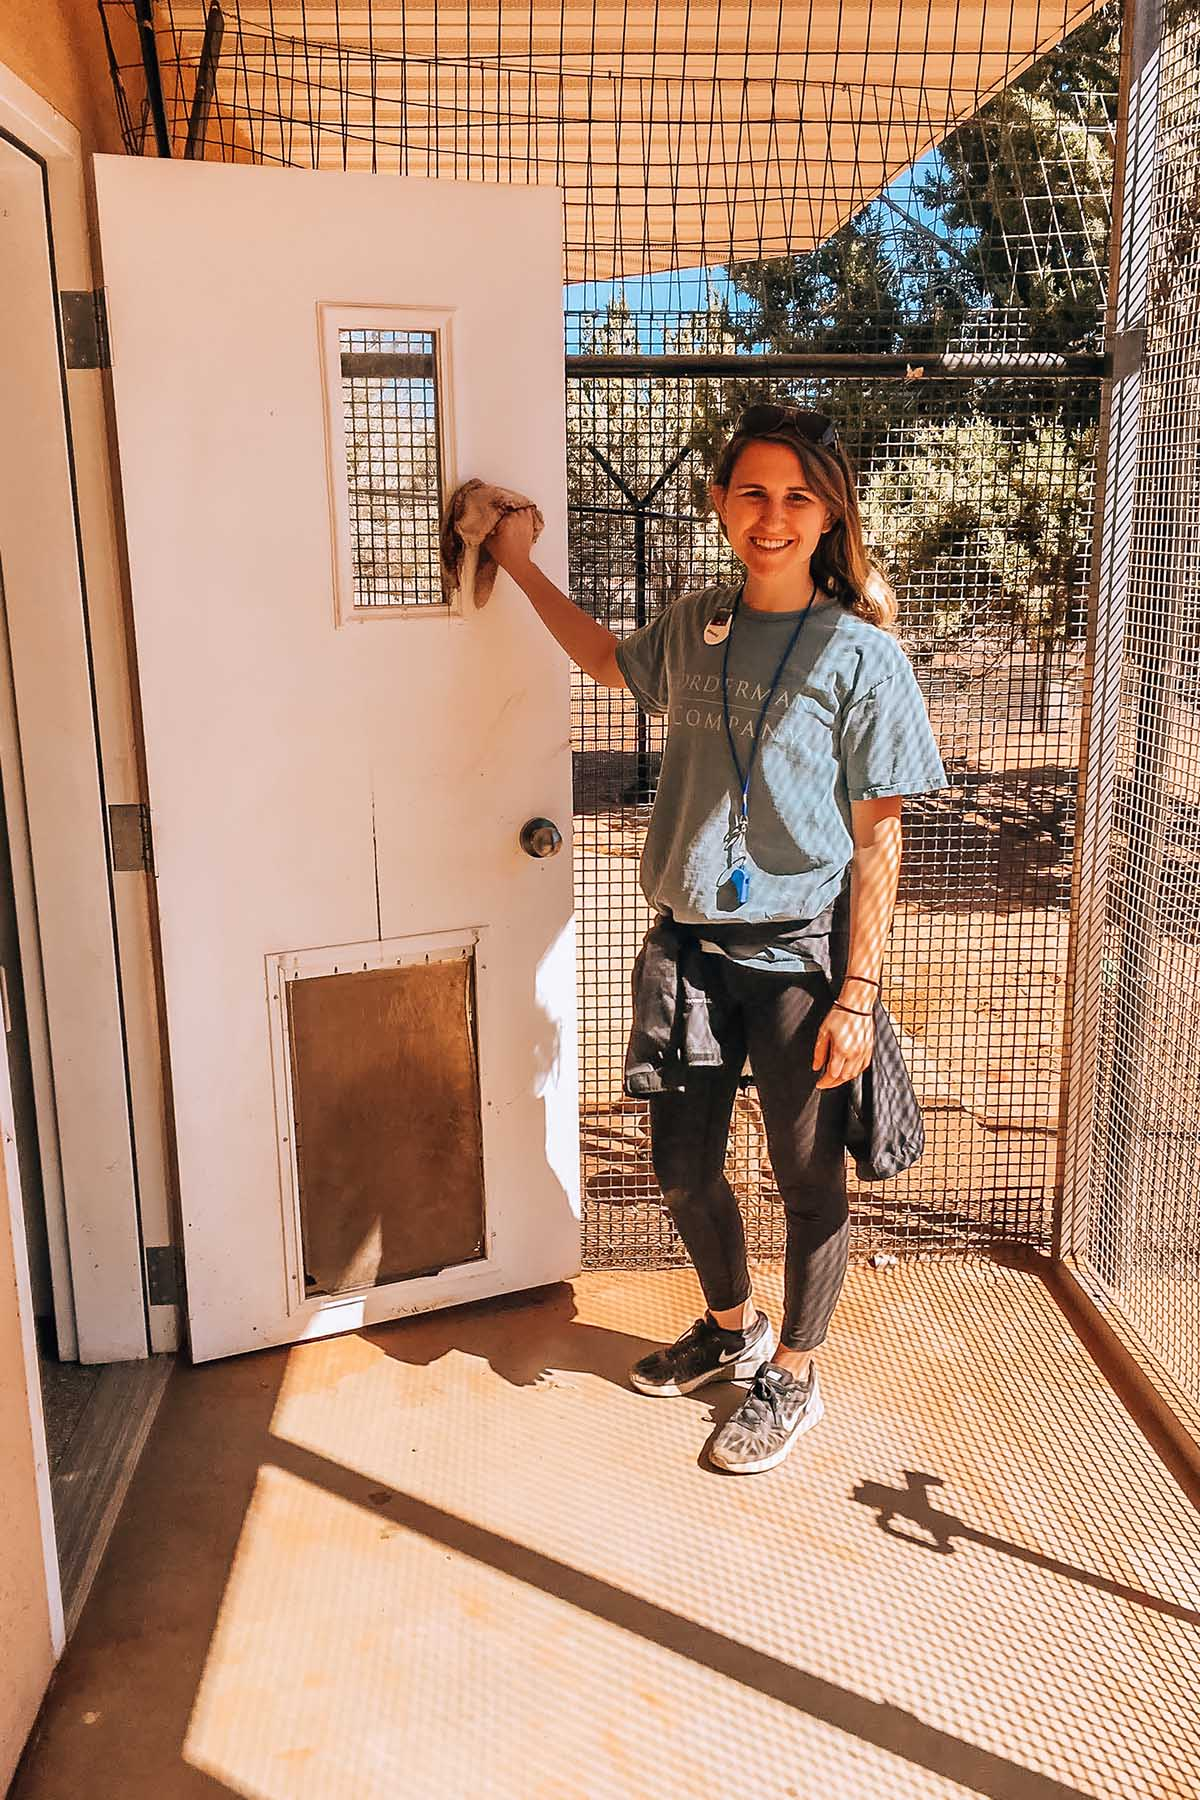 Hannah cleaning a door while volunteering at Best Friends Animal Sanctuary. She is standing and smiling towards the camera.